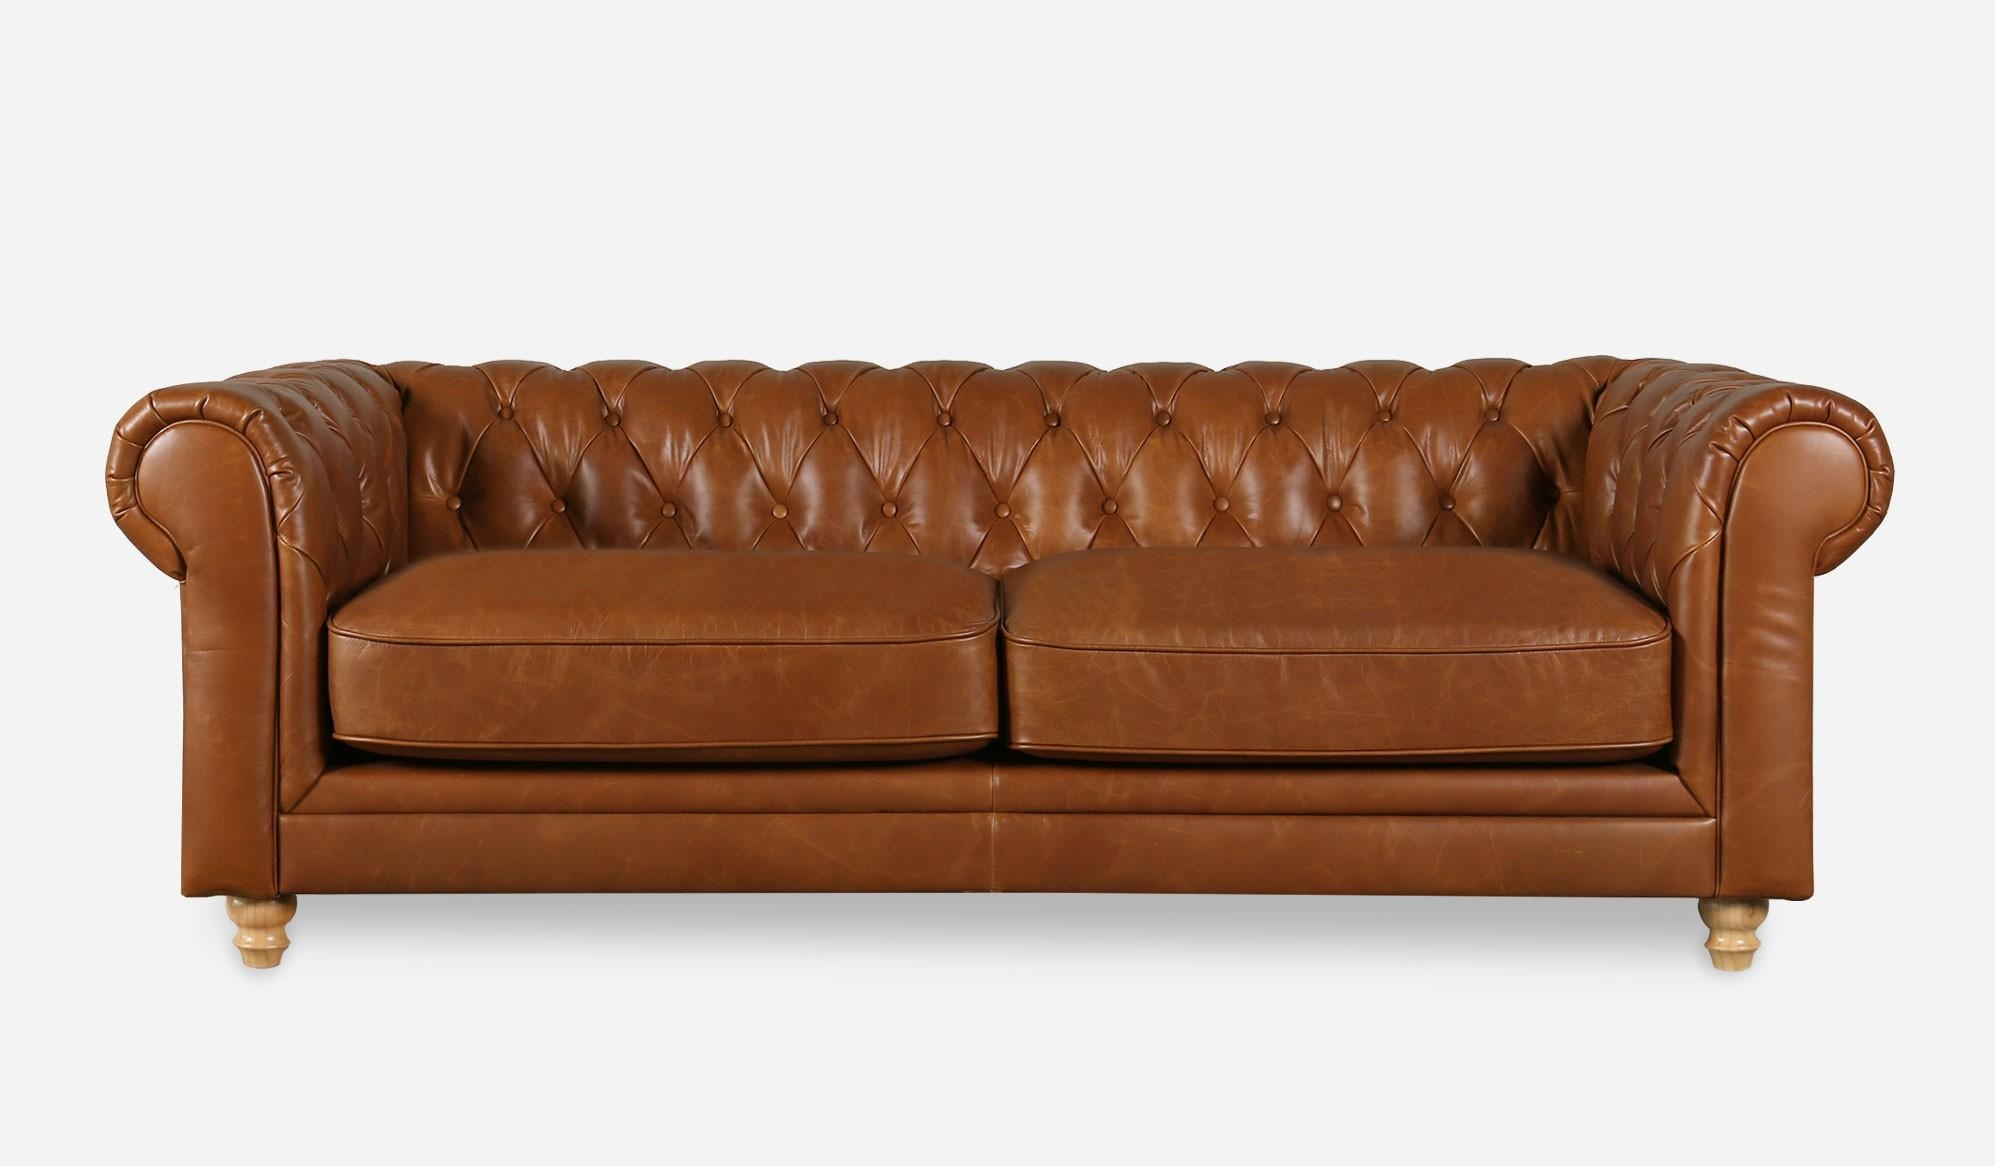 20 Top Camel Color Leather Sofas | Sofa Ideas